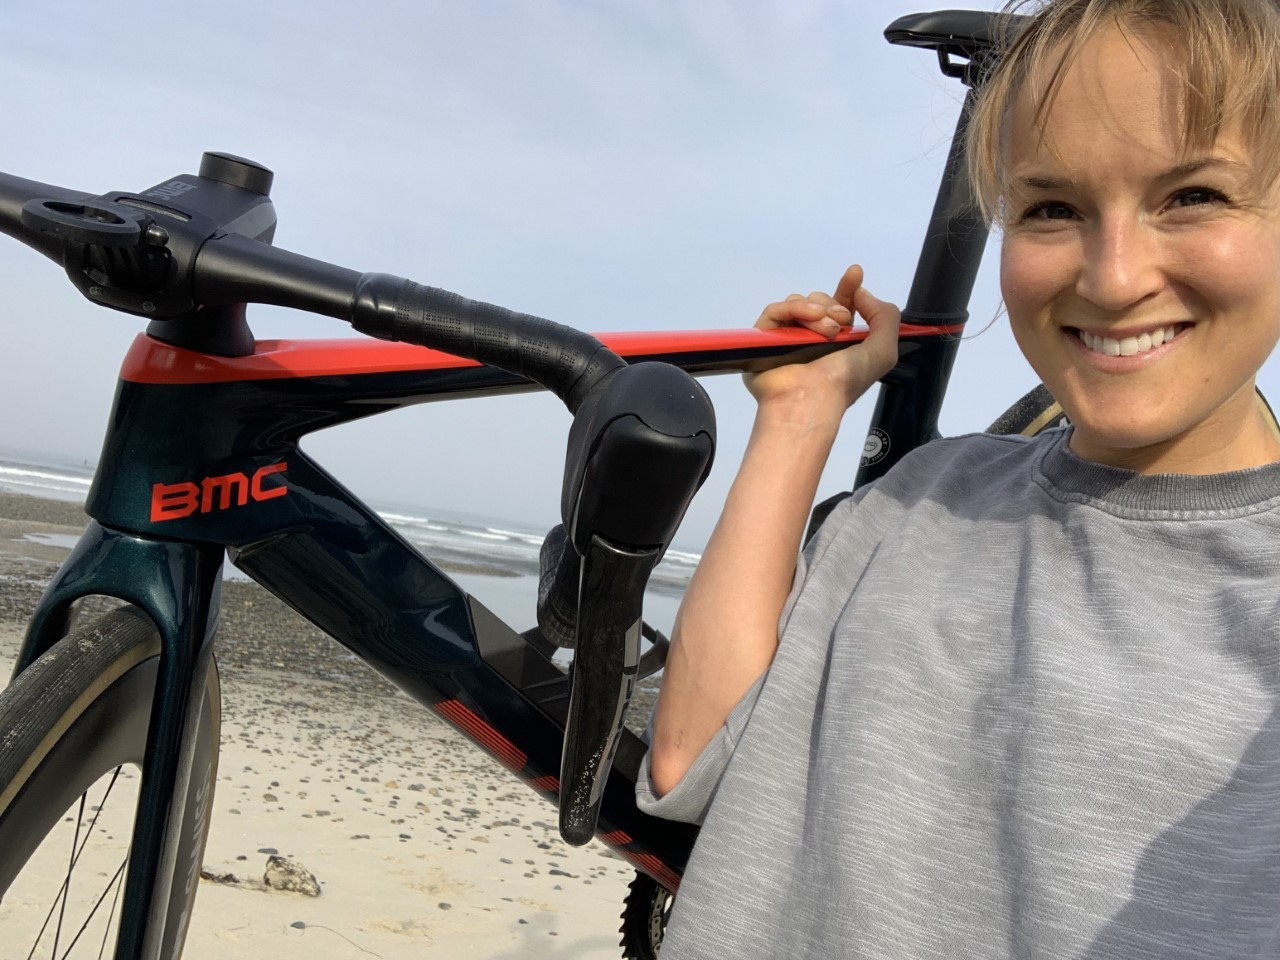 Lex Albrech at the Pacific Ocean before Race Across America with a BMC Time Machine Road bike, the fastest road bike in the world